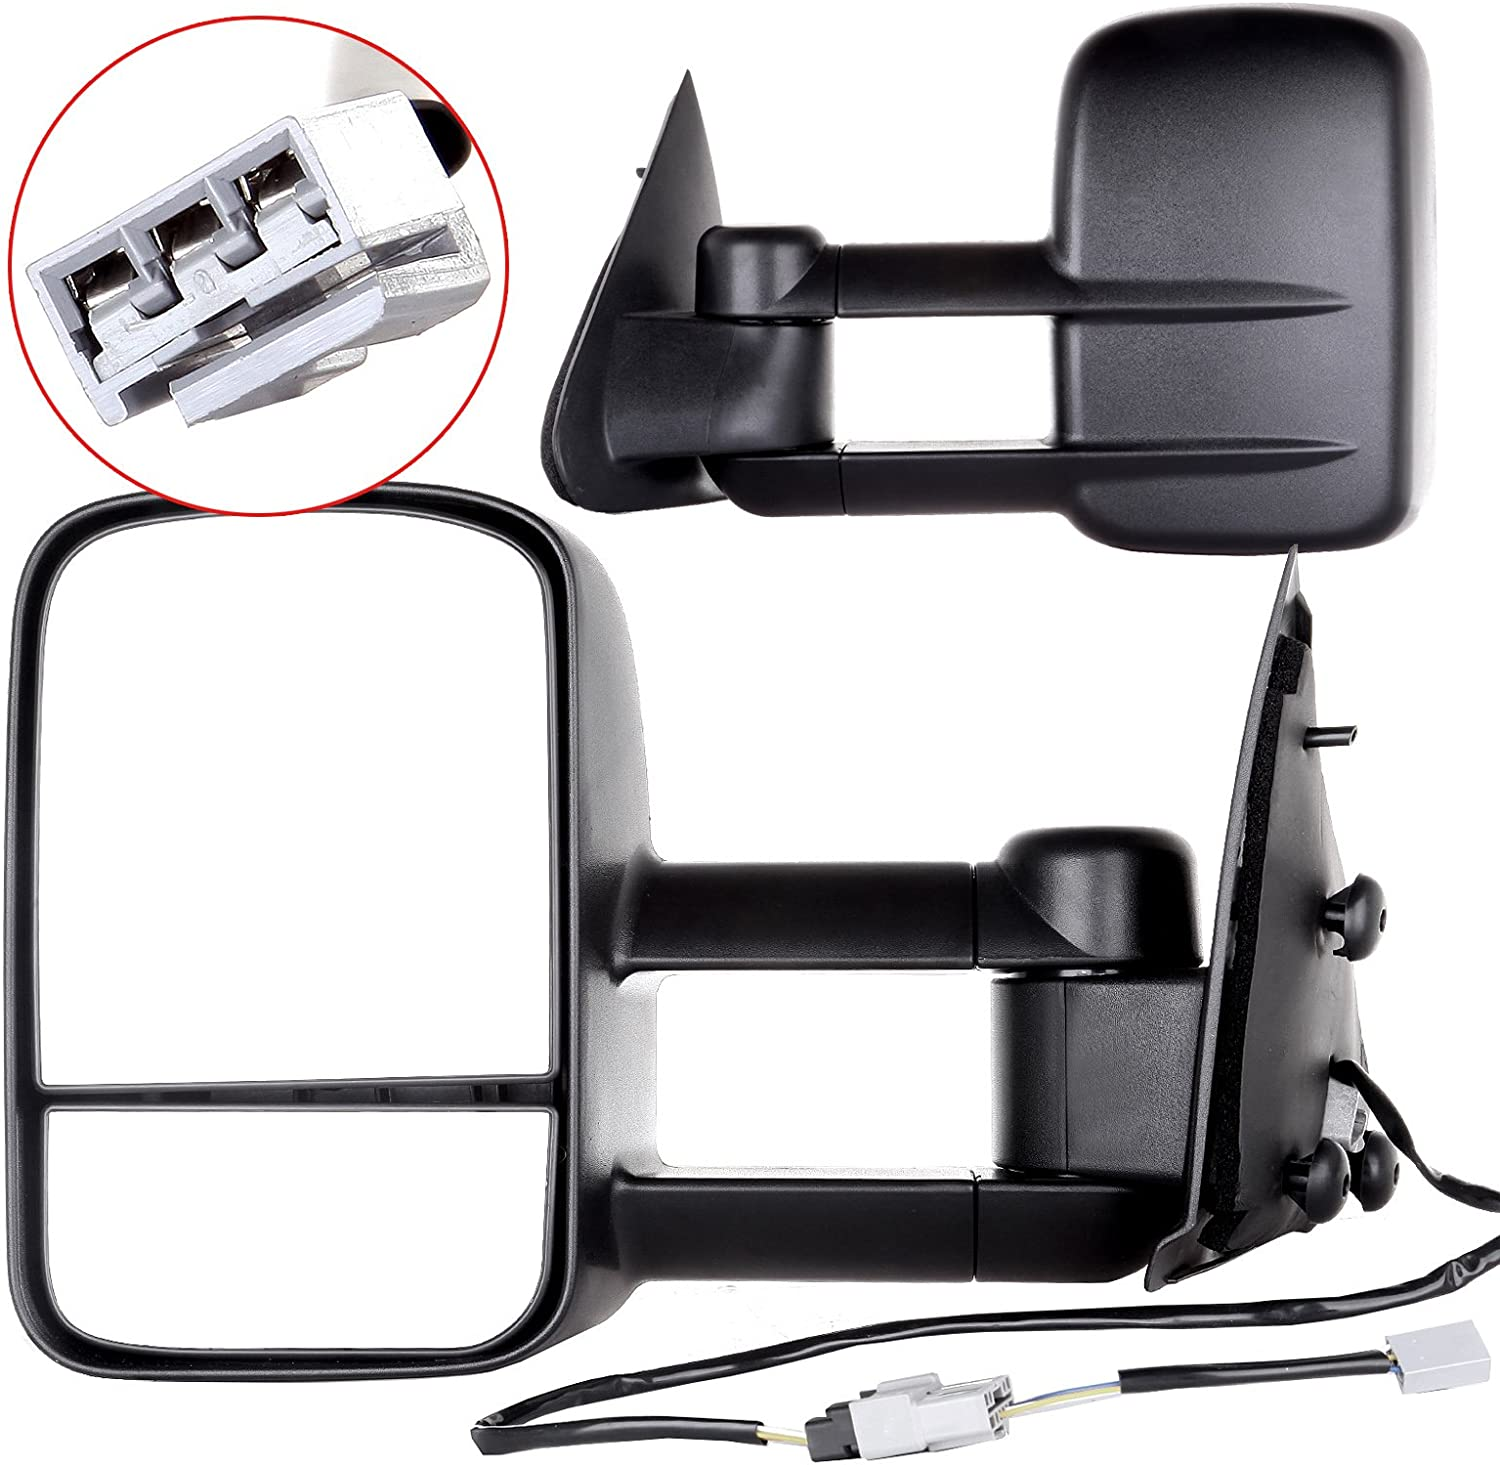 ANGLEWIDE Pair of Towing Popular overseas Mirrors Heated Quantity limited Black Power No Adjusted